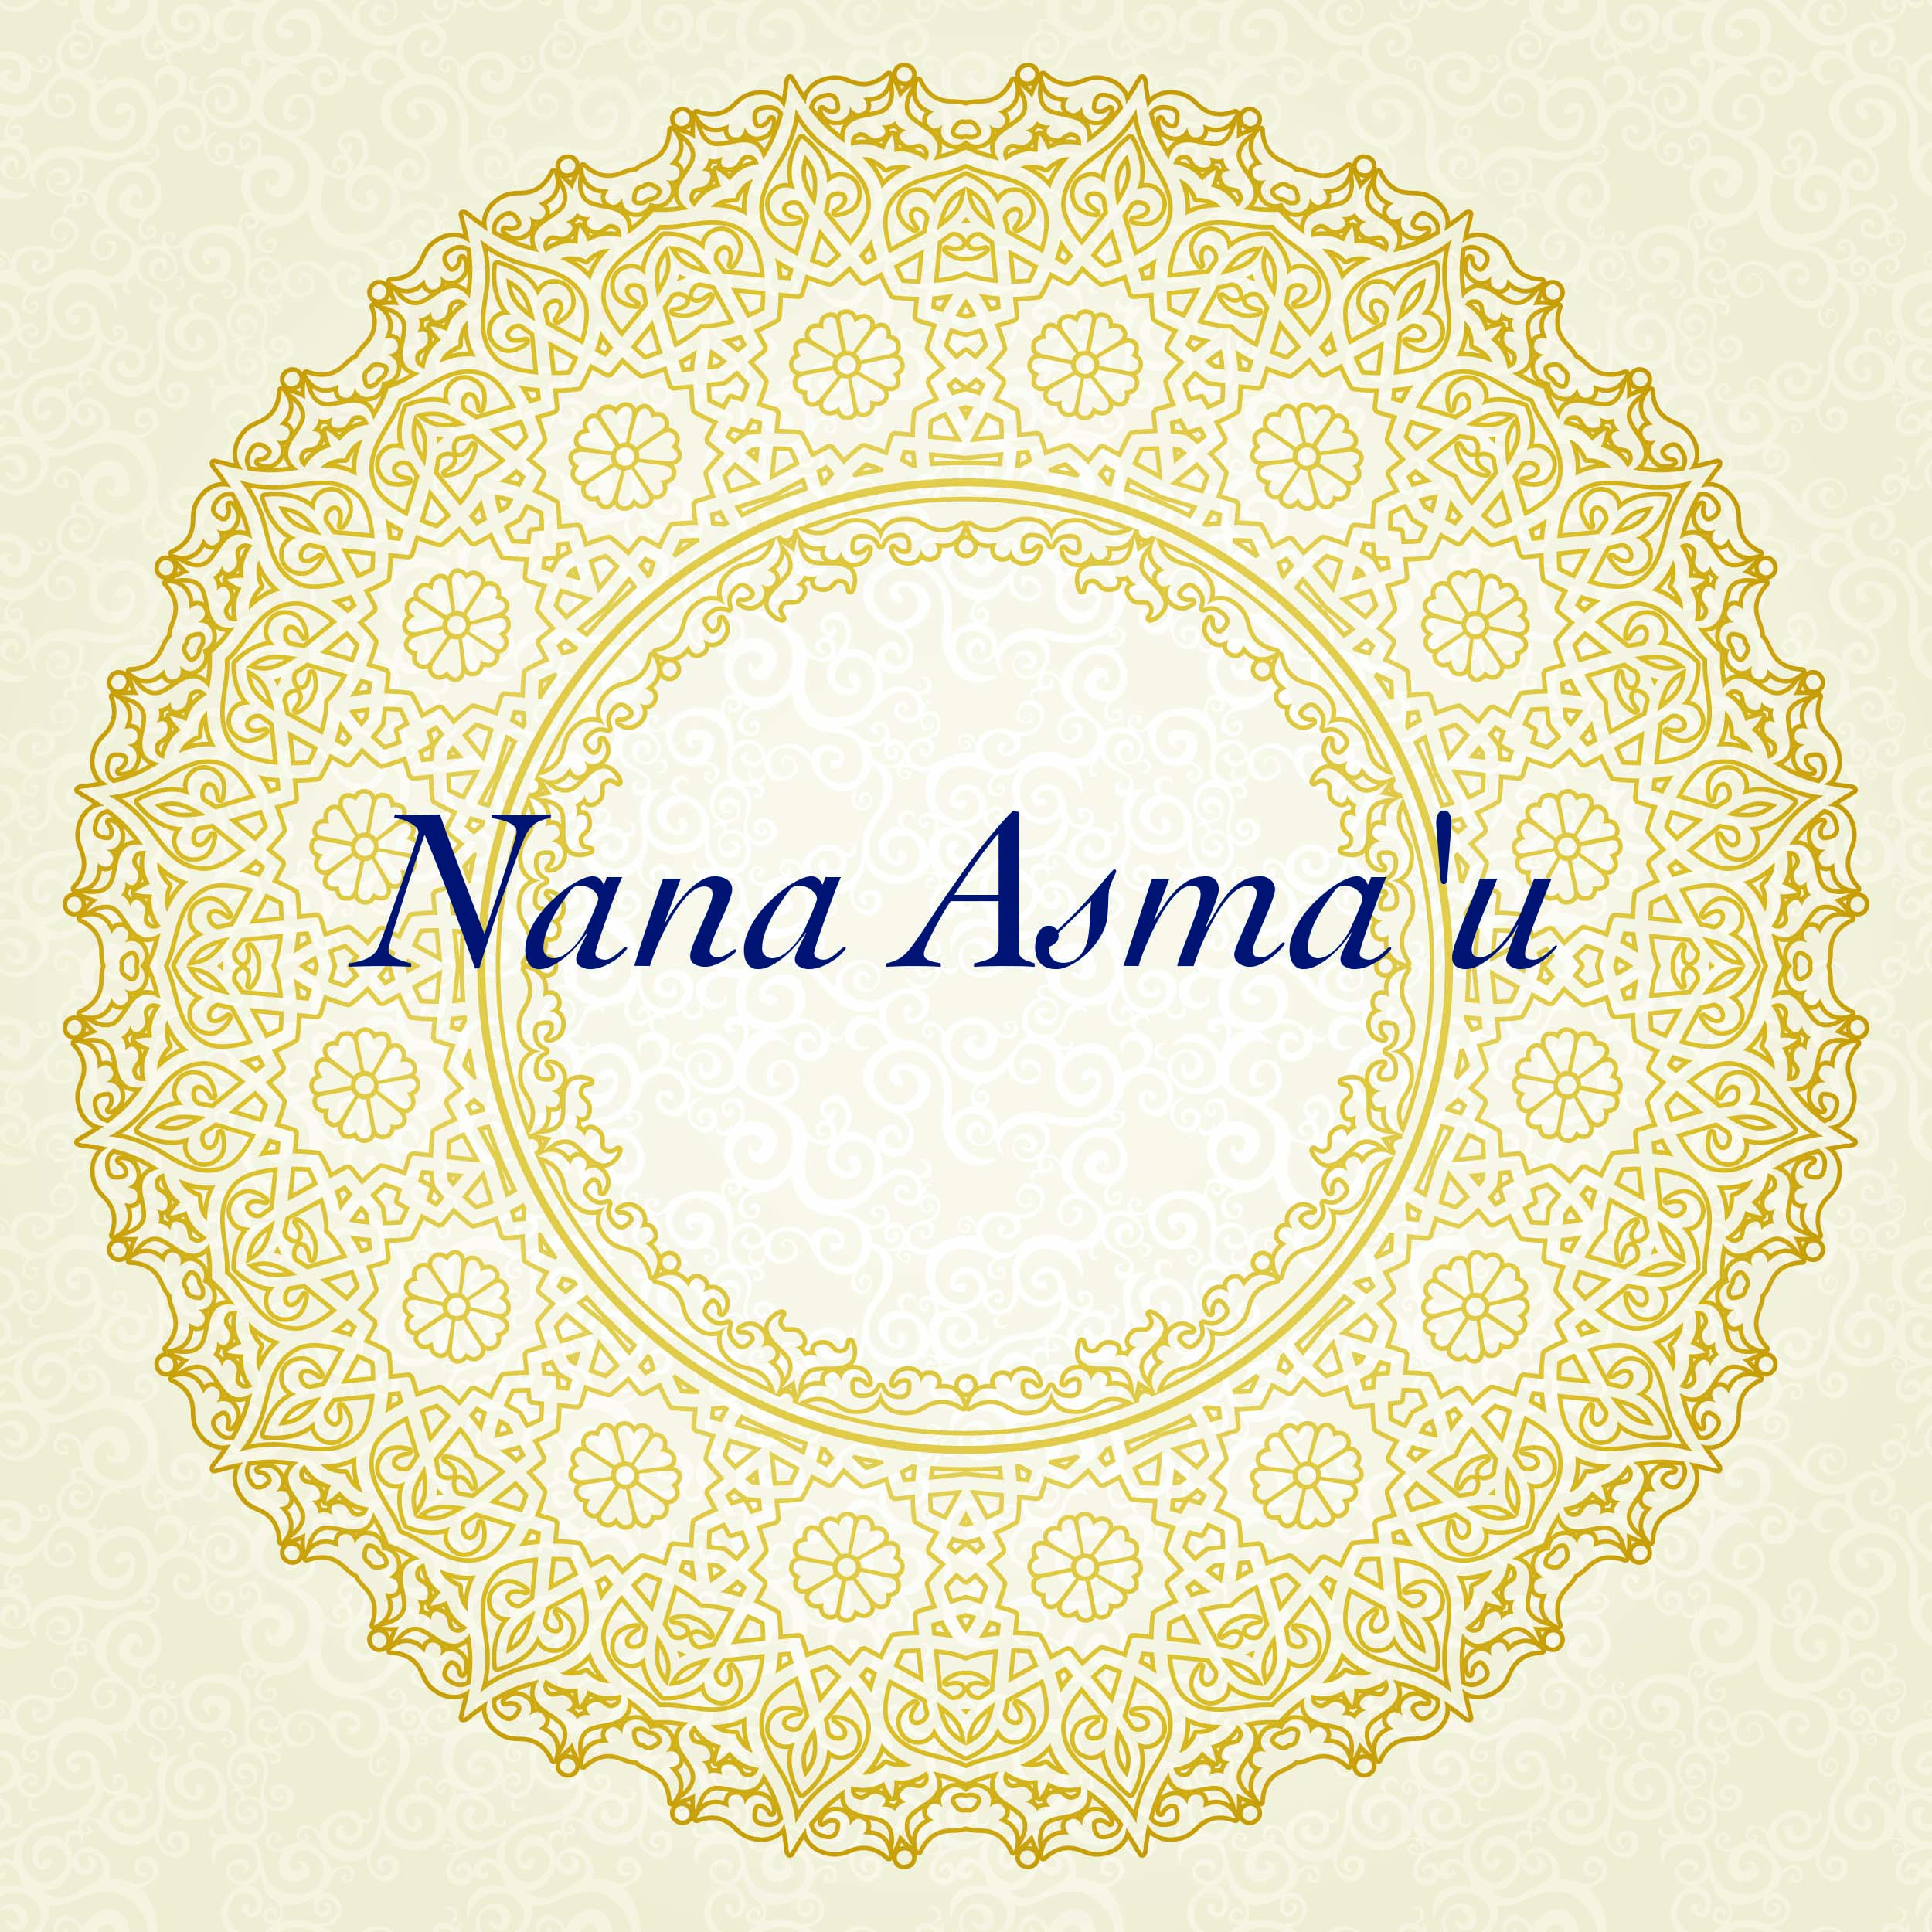 Nana Asma'u-Scholar, Poet, Community Leader, Educator